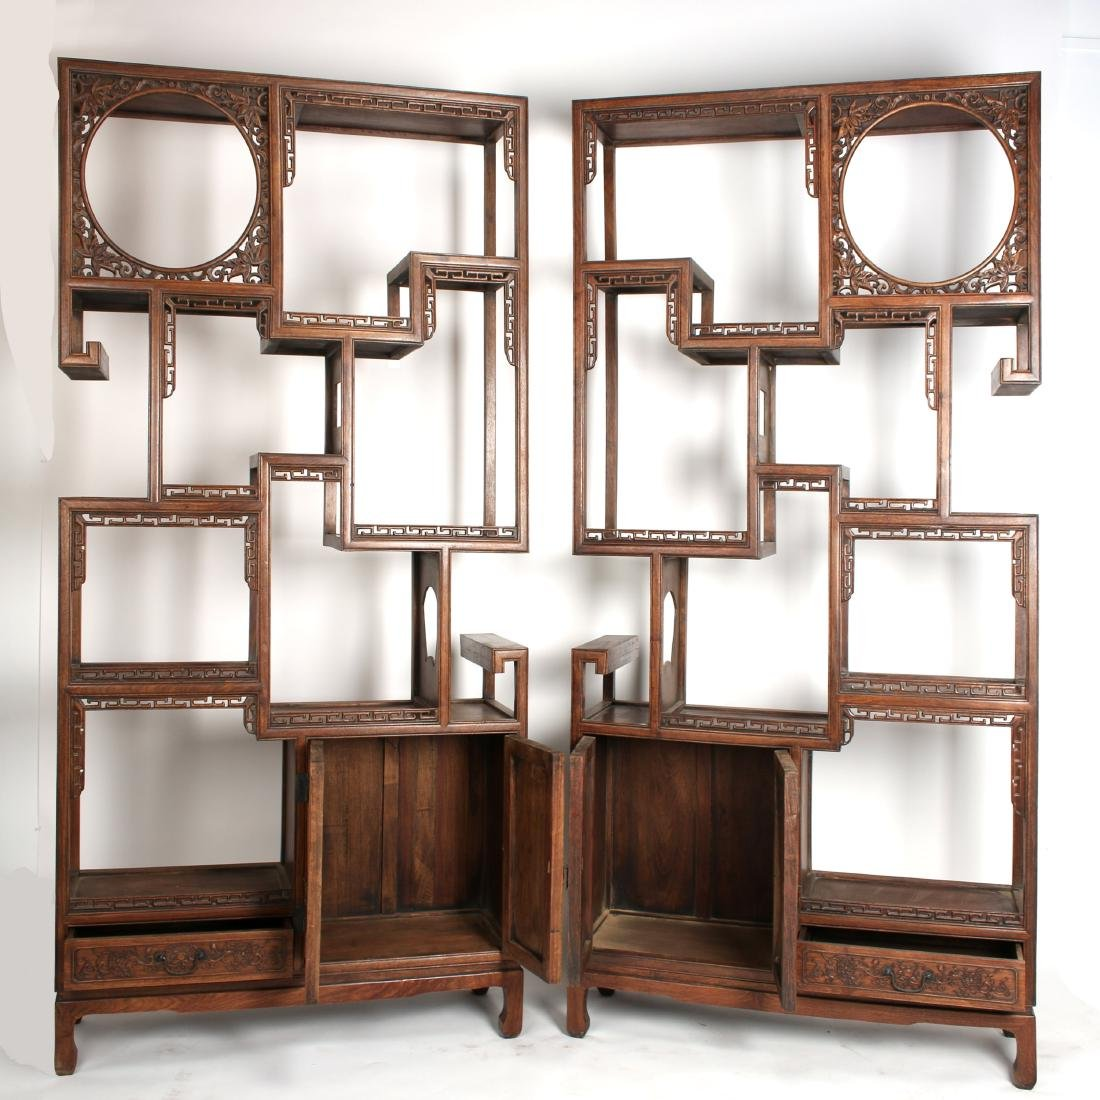 PAIR OF MIRRORED CARVED HUANGHUALI SHELVES - 7